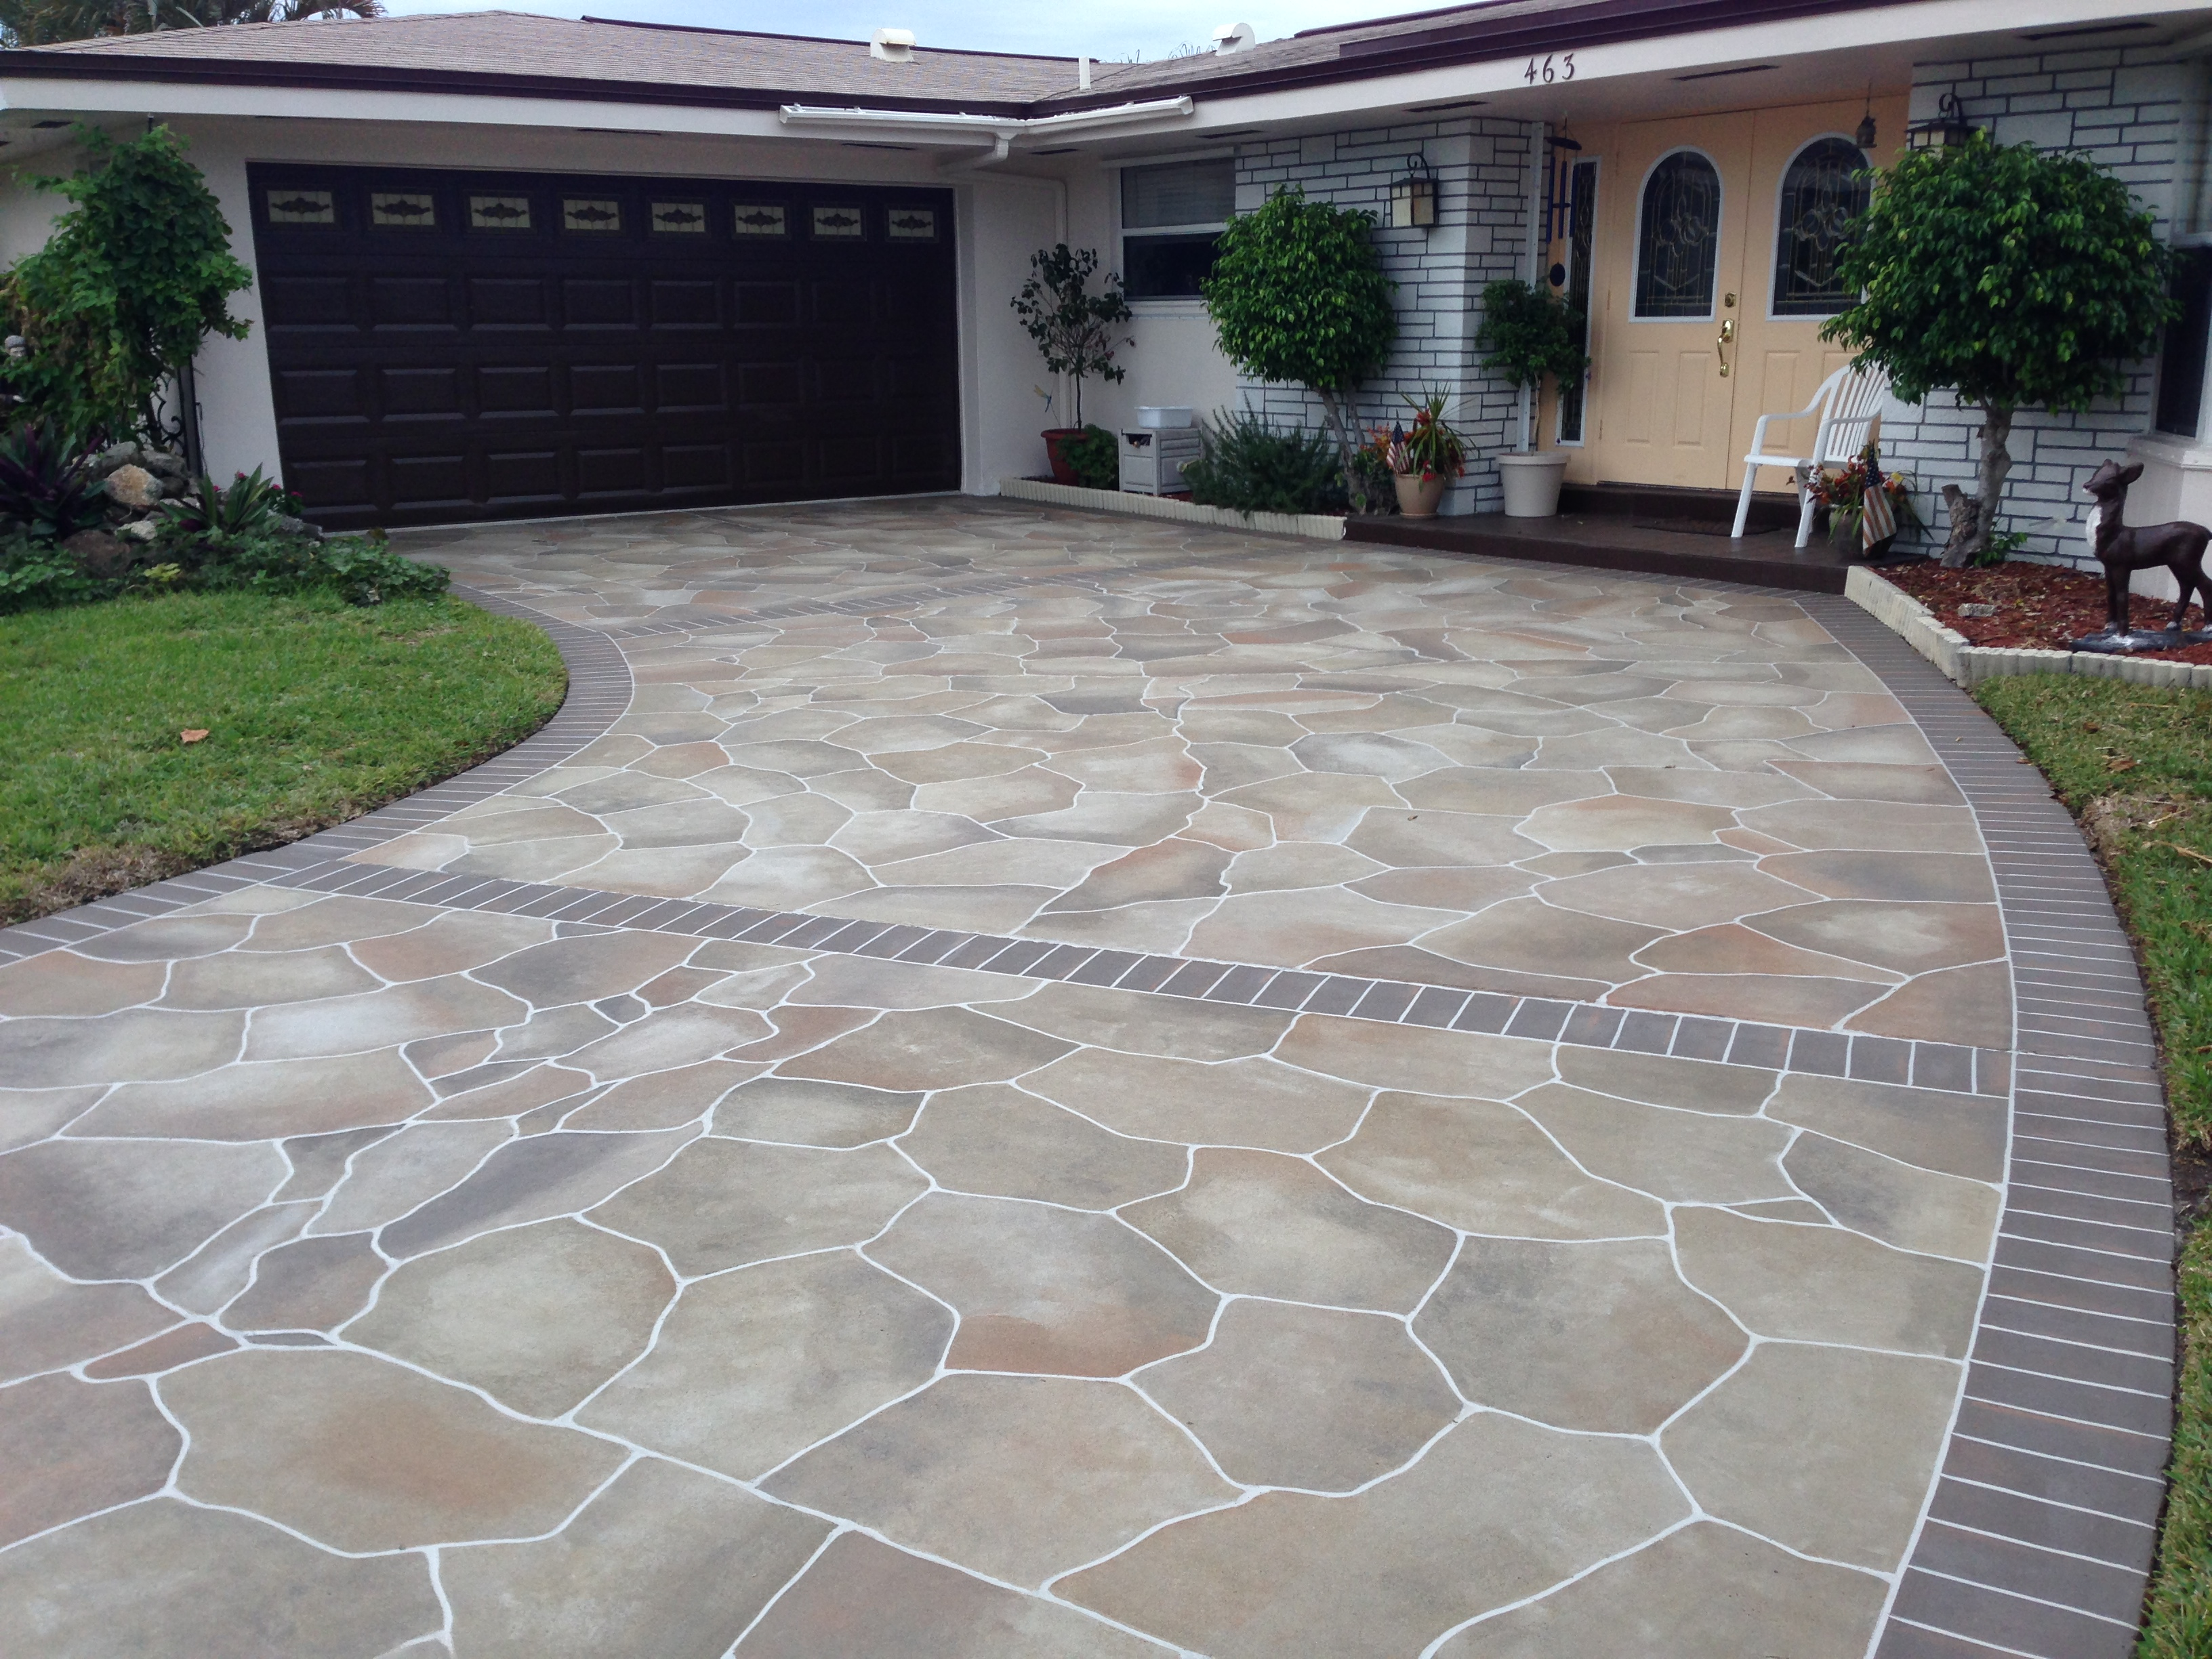 concrete designs florida driveway decorating ideas - Concrete Driveway Design Ideas